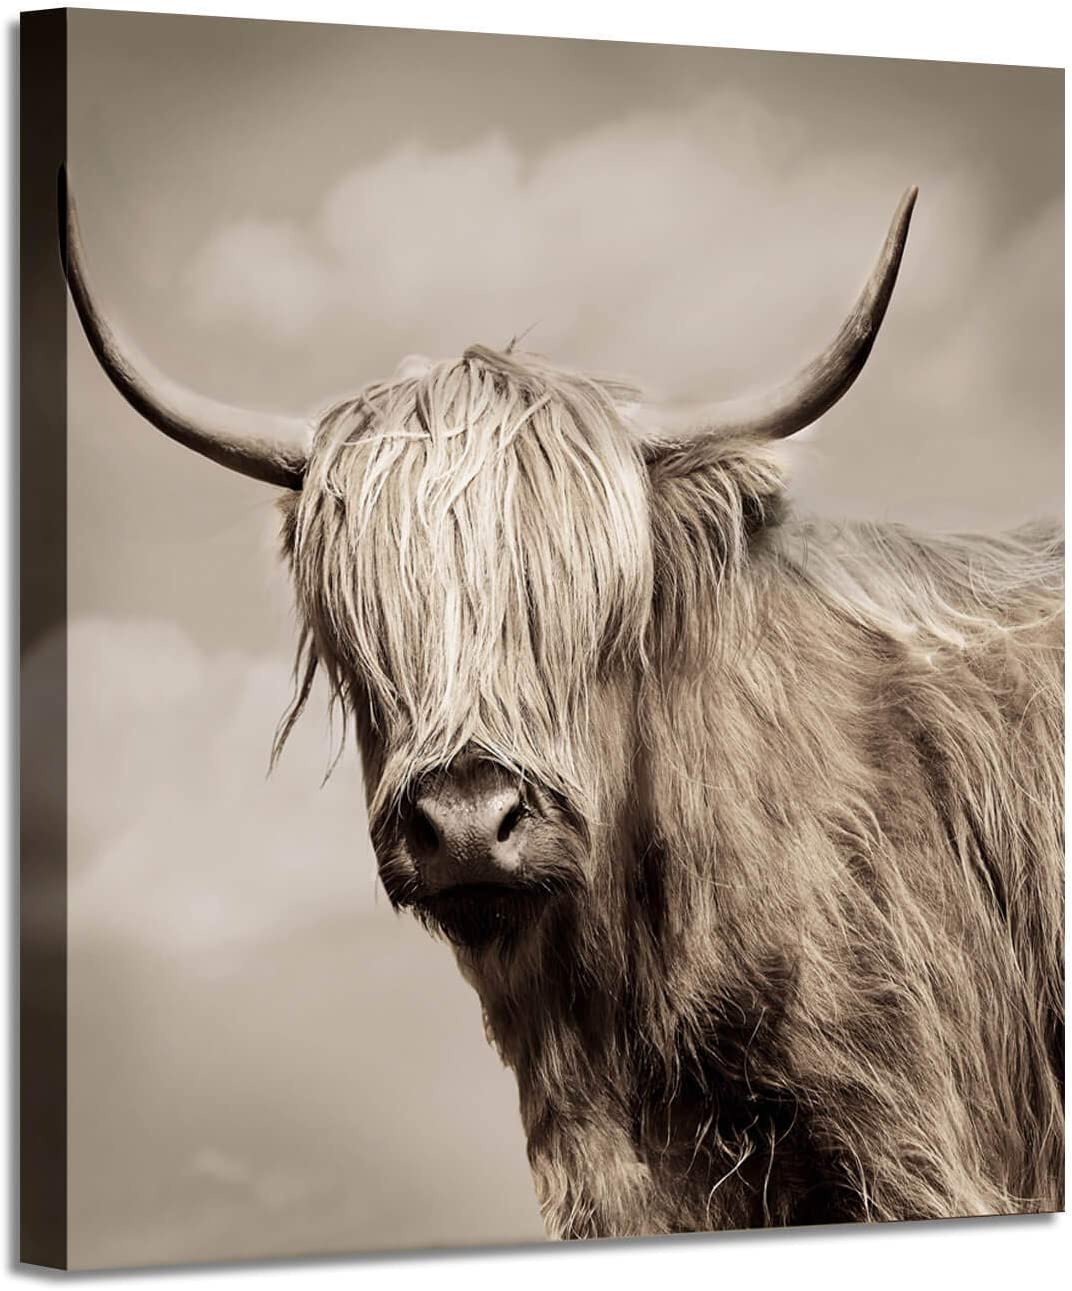 Amazon Com Bull Wall Art Yak Picture Wildlife Artwork Print Painting On Wrapped Canvas Wall Painting For Living Room 24 W X 24 H Multi Sized Posters Prints